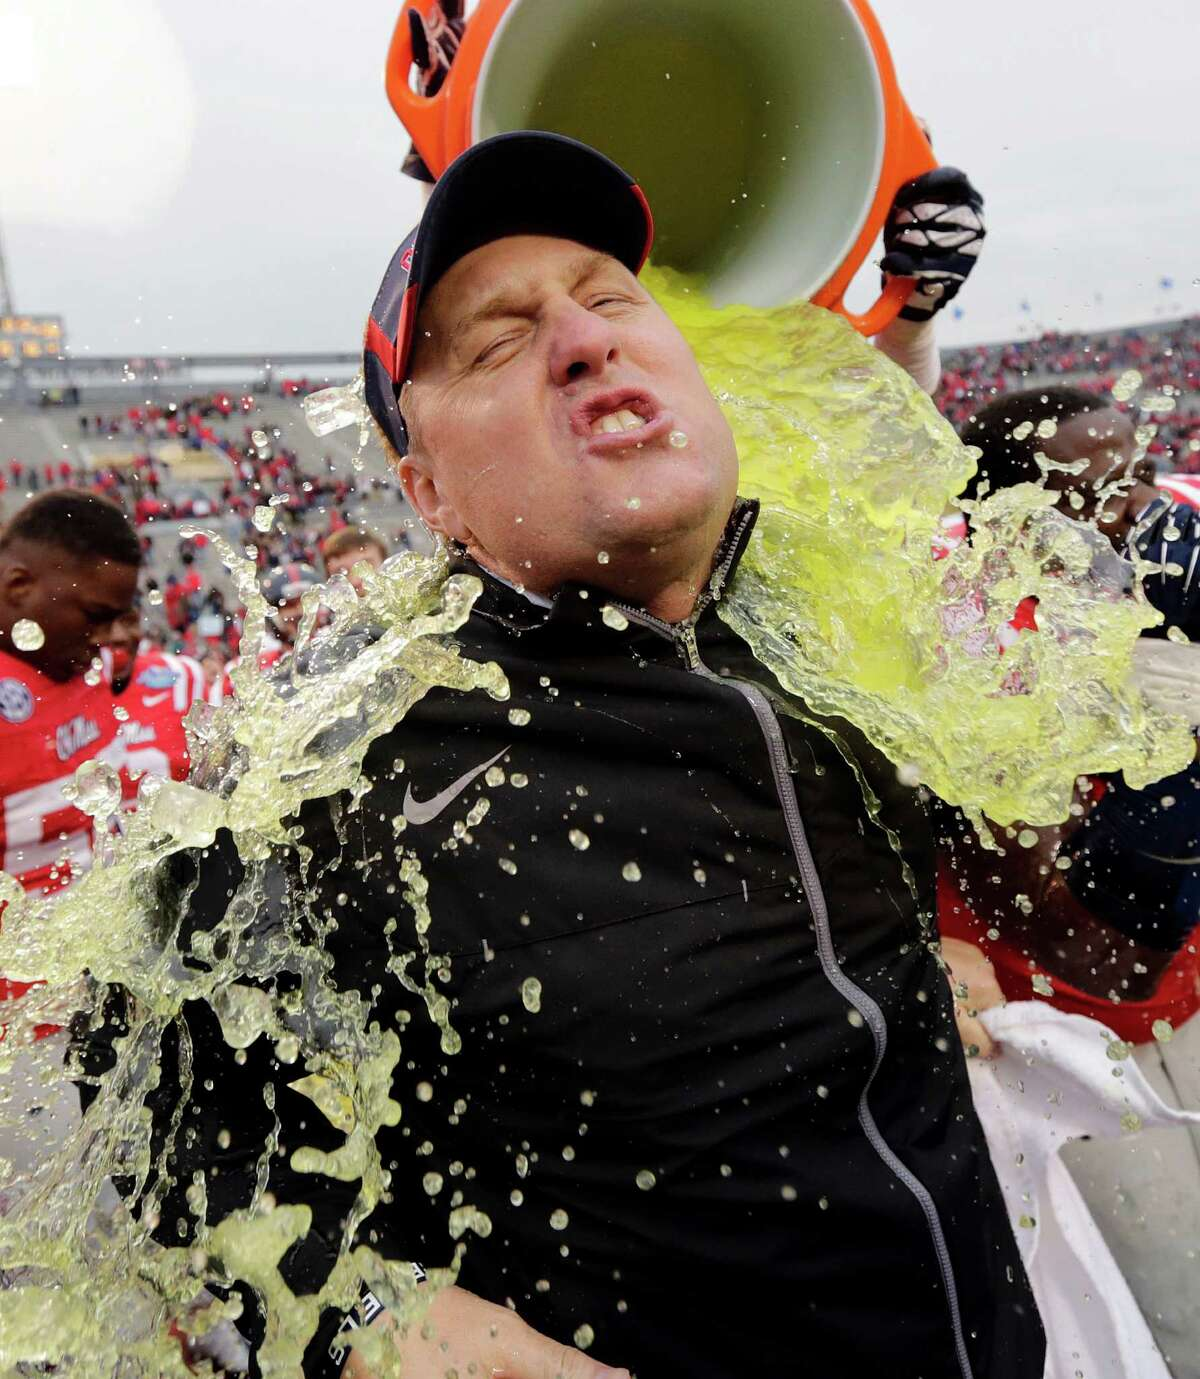 Mississippi head coach Hugh Freeze gets dunked after their 38-17 win over Pittsburgh in the BBVA Compass Bowl NCAA college football game against Pittsburgh at Legion Field in Birmingham, Ala., Saturday, Jan. 5, 2013.